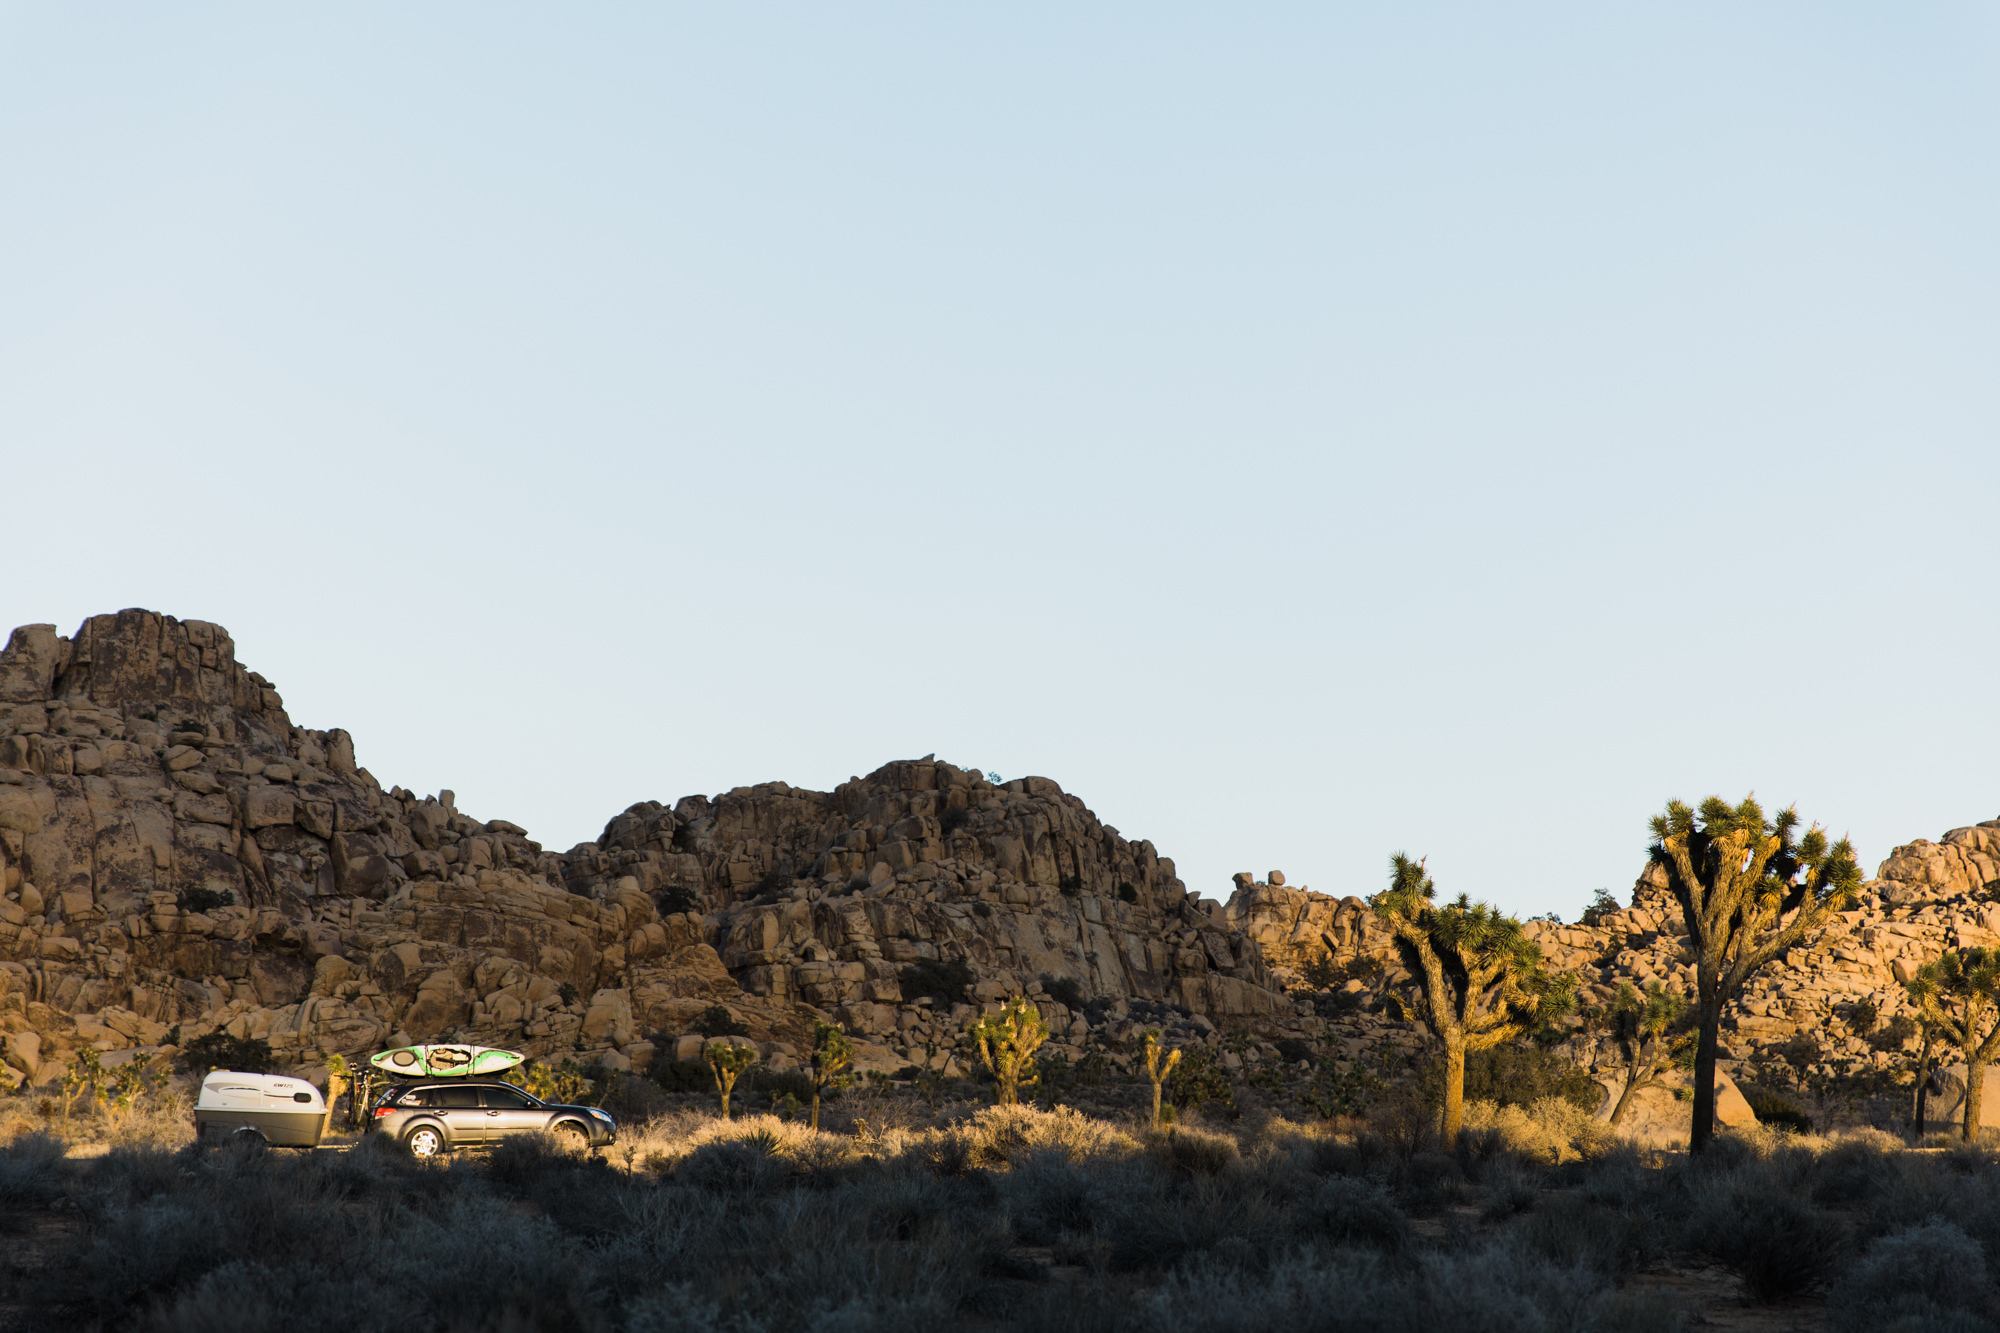 exploring joshua tree national park // www.abbihearne.com